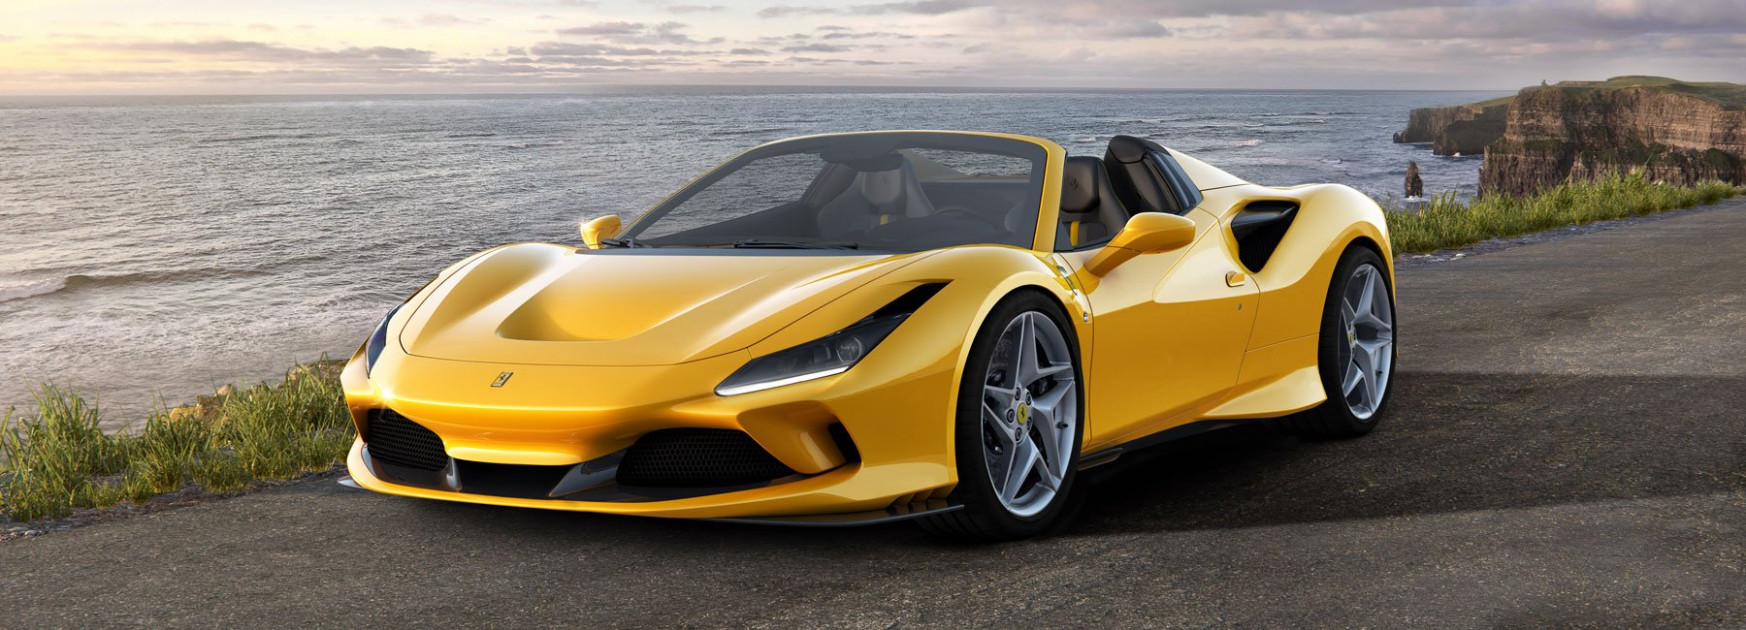 ferrari reveals 6 f6 spider with more power and less weight - 2020 ferrari new